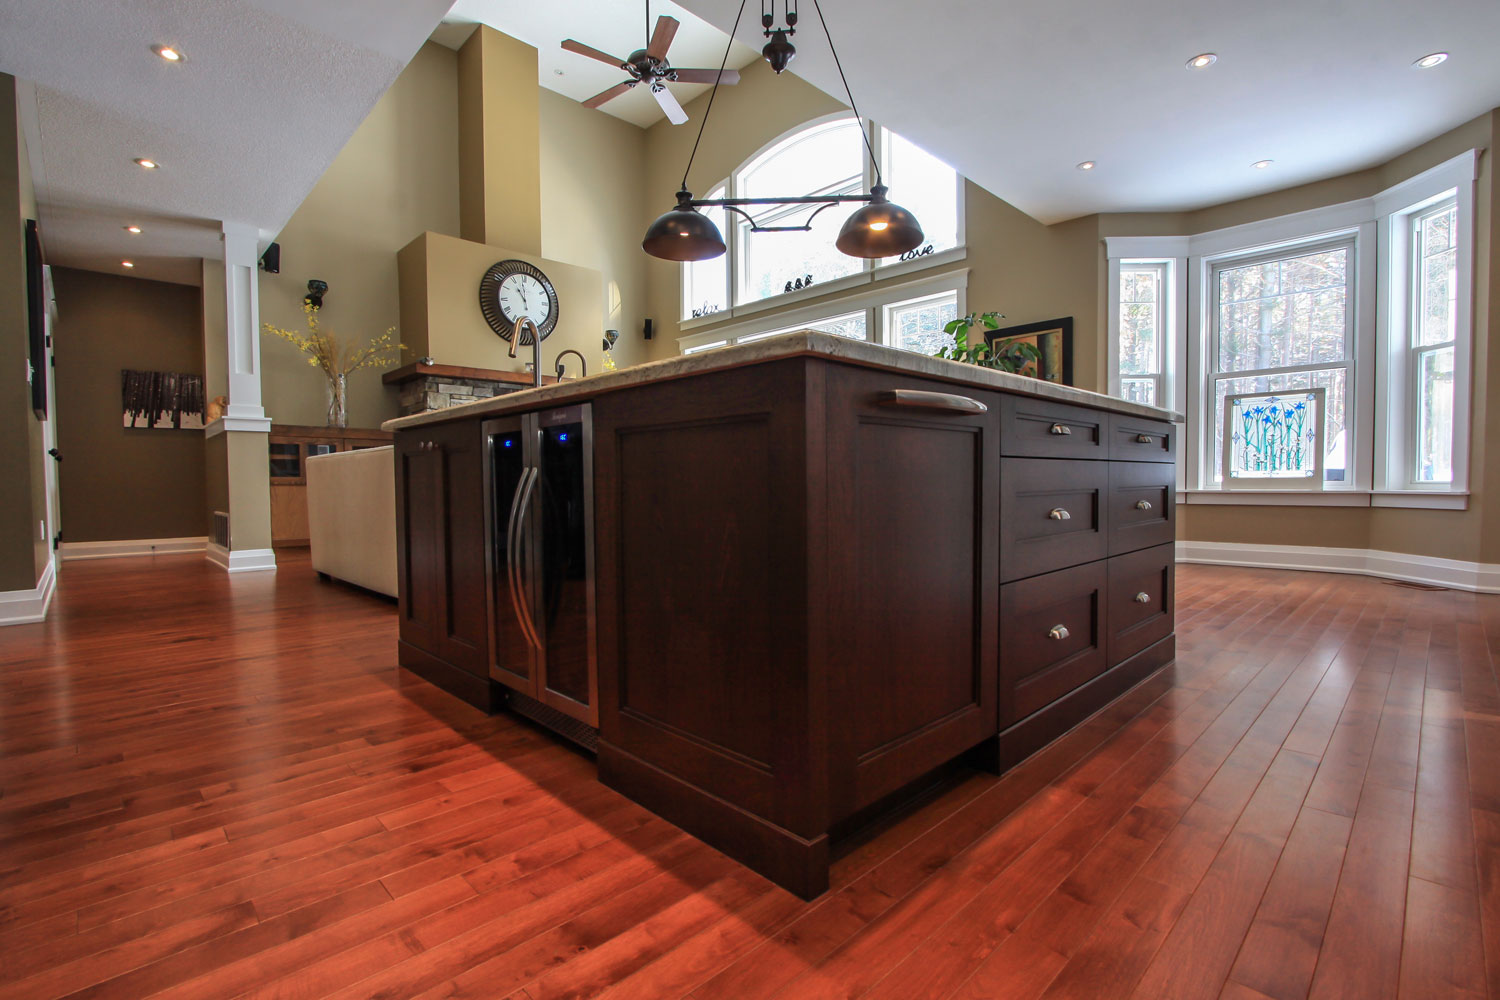 Kitchen island with dark wood cabinets, hidden dishwasher, and bar fridge - Total Living Concepts barrie ontario